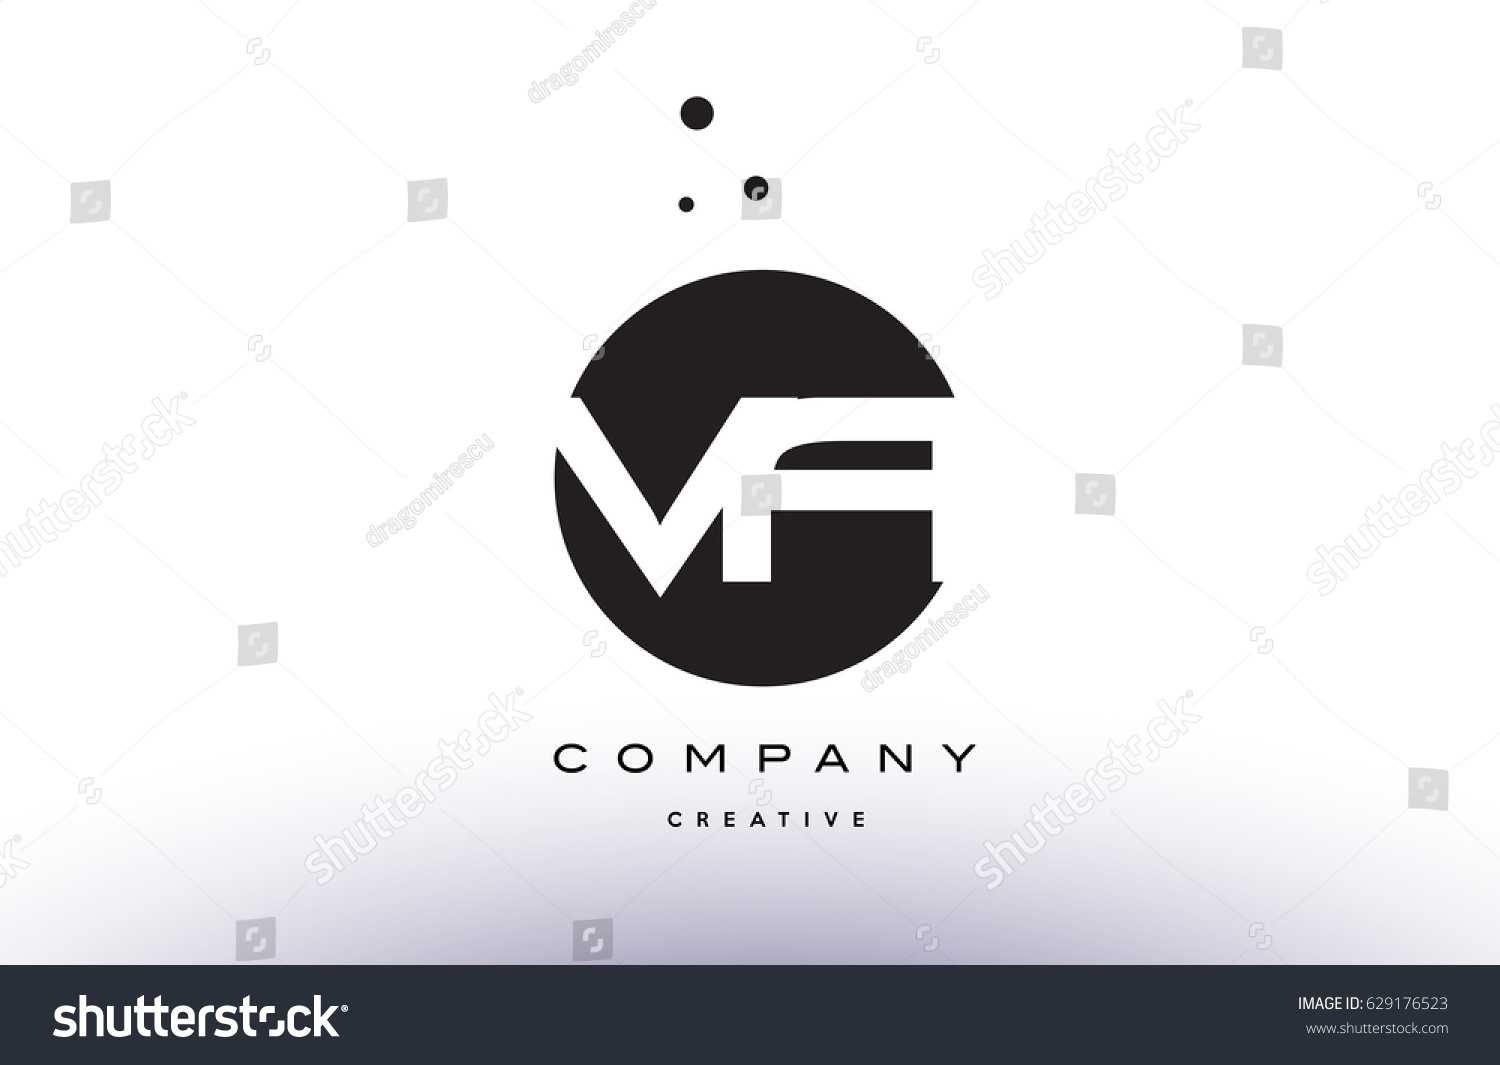 Va v alphabet company letter logo stock vector 629176523 shutterstock va v a alphabet company letter logo design vector icon template simple black white circle dot dots buycottarizona Image collections